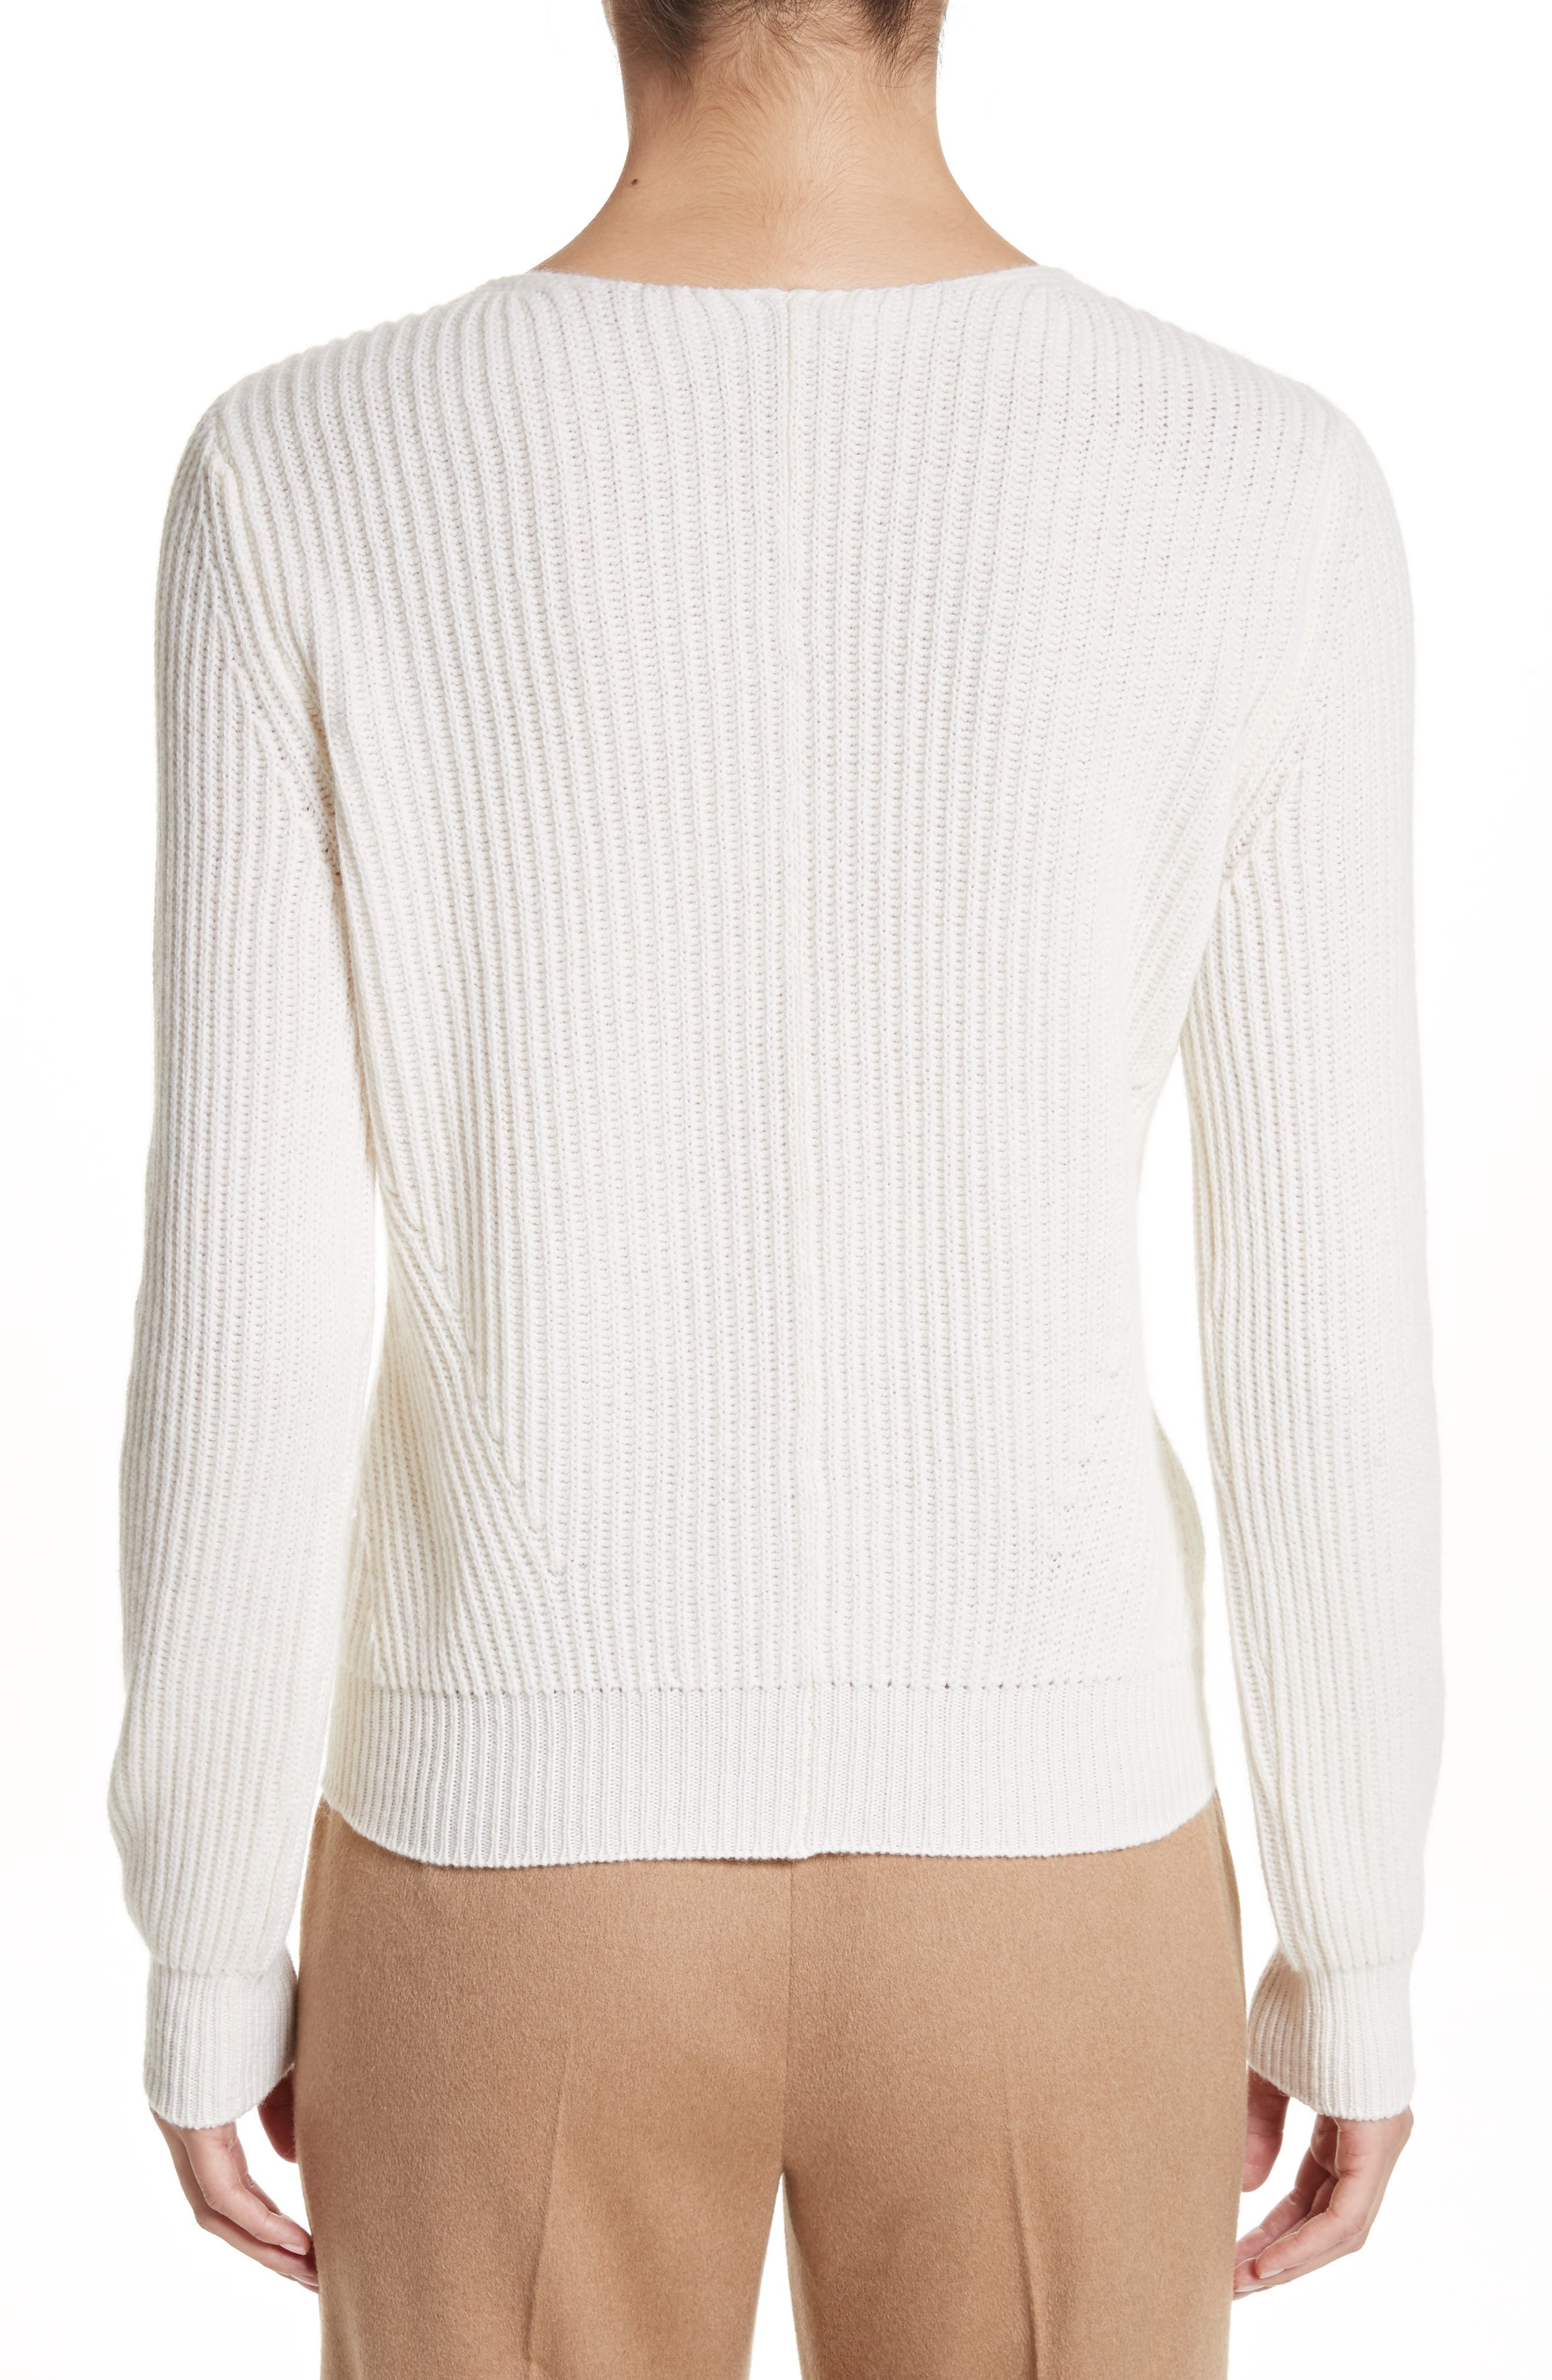 Sax Wool & Cashmere Sweater,                             Alternate thumbnail 2, color,                             900